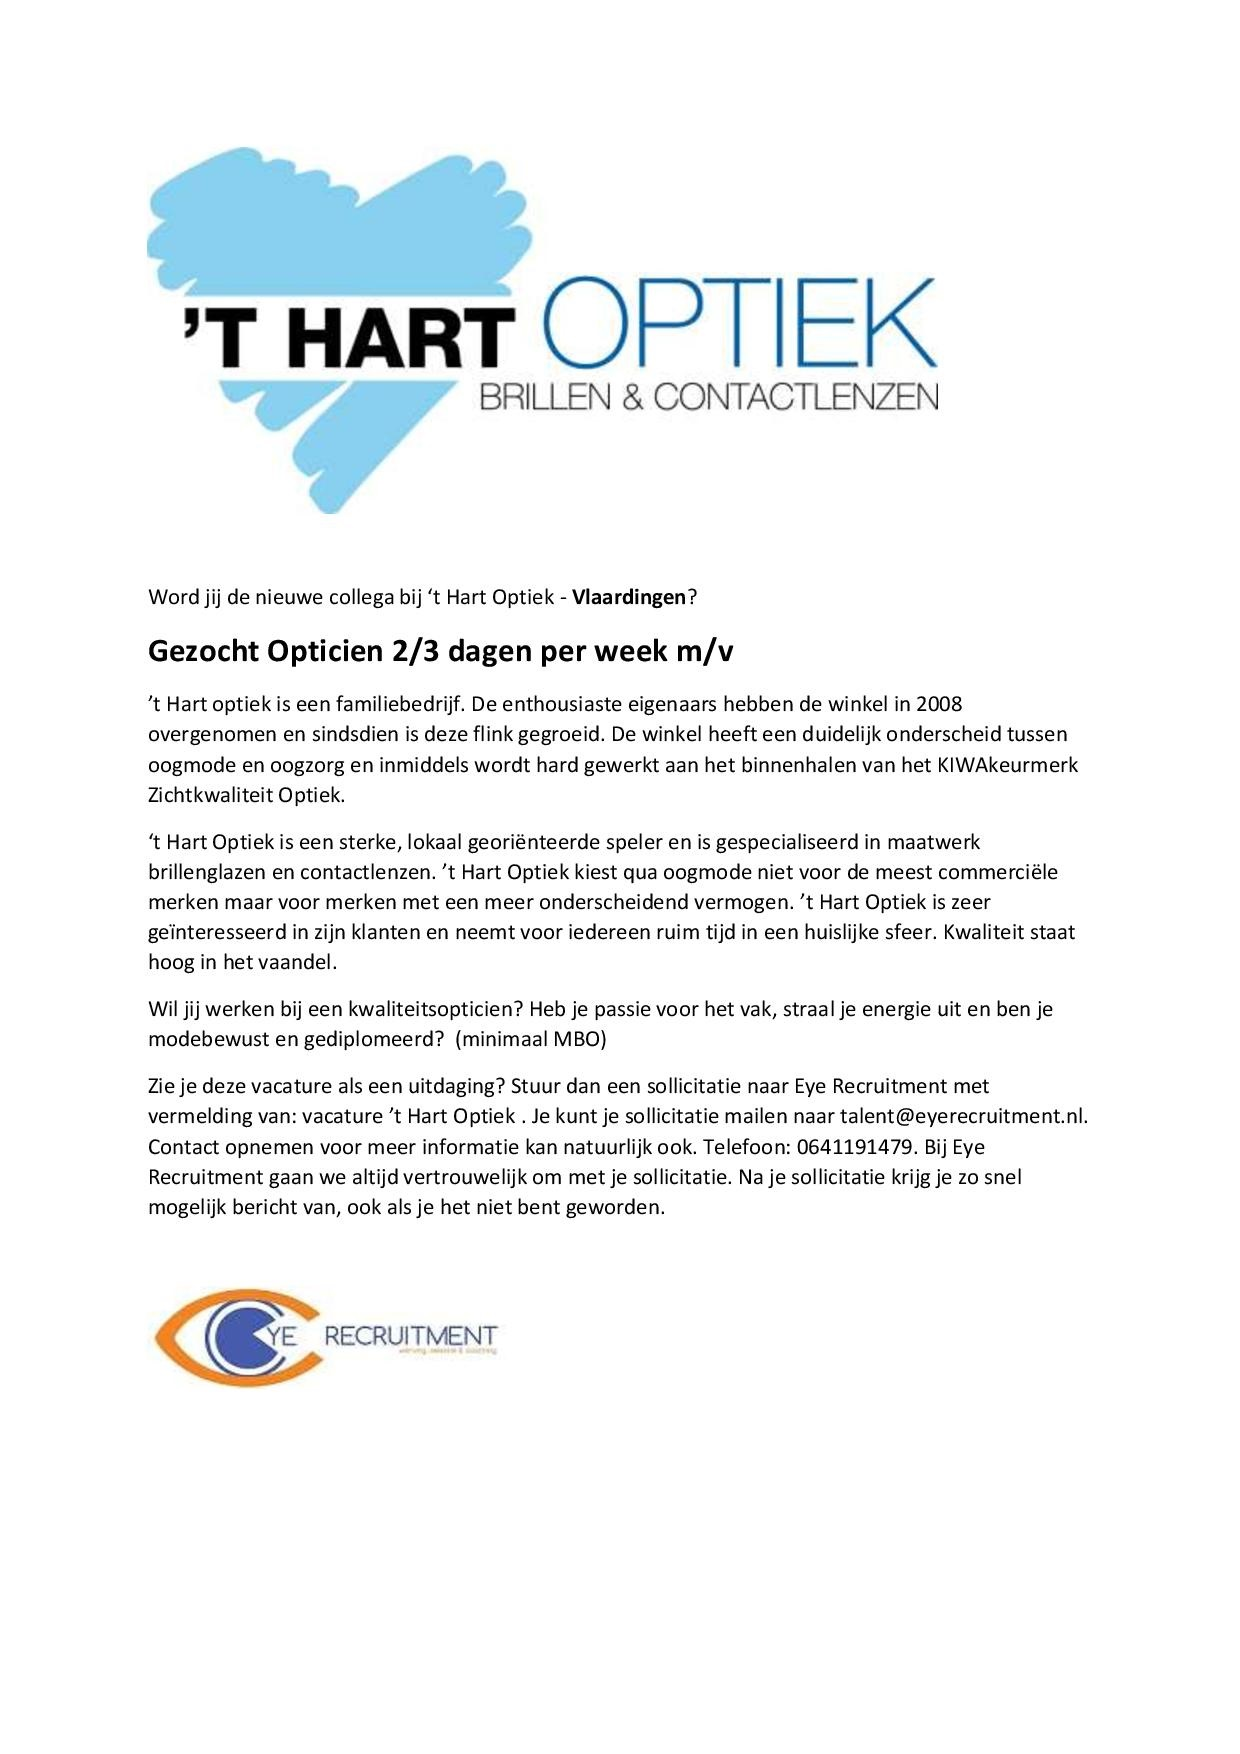 Advertentietekst opticien 'T Hart